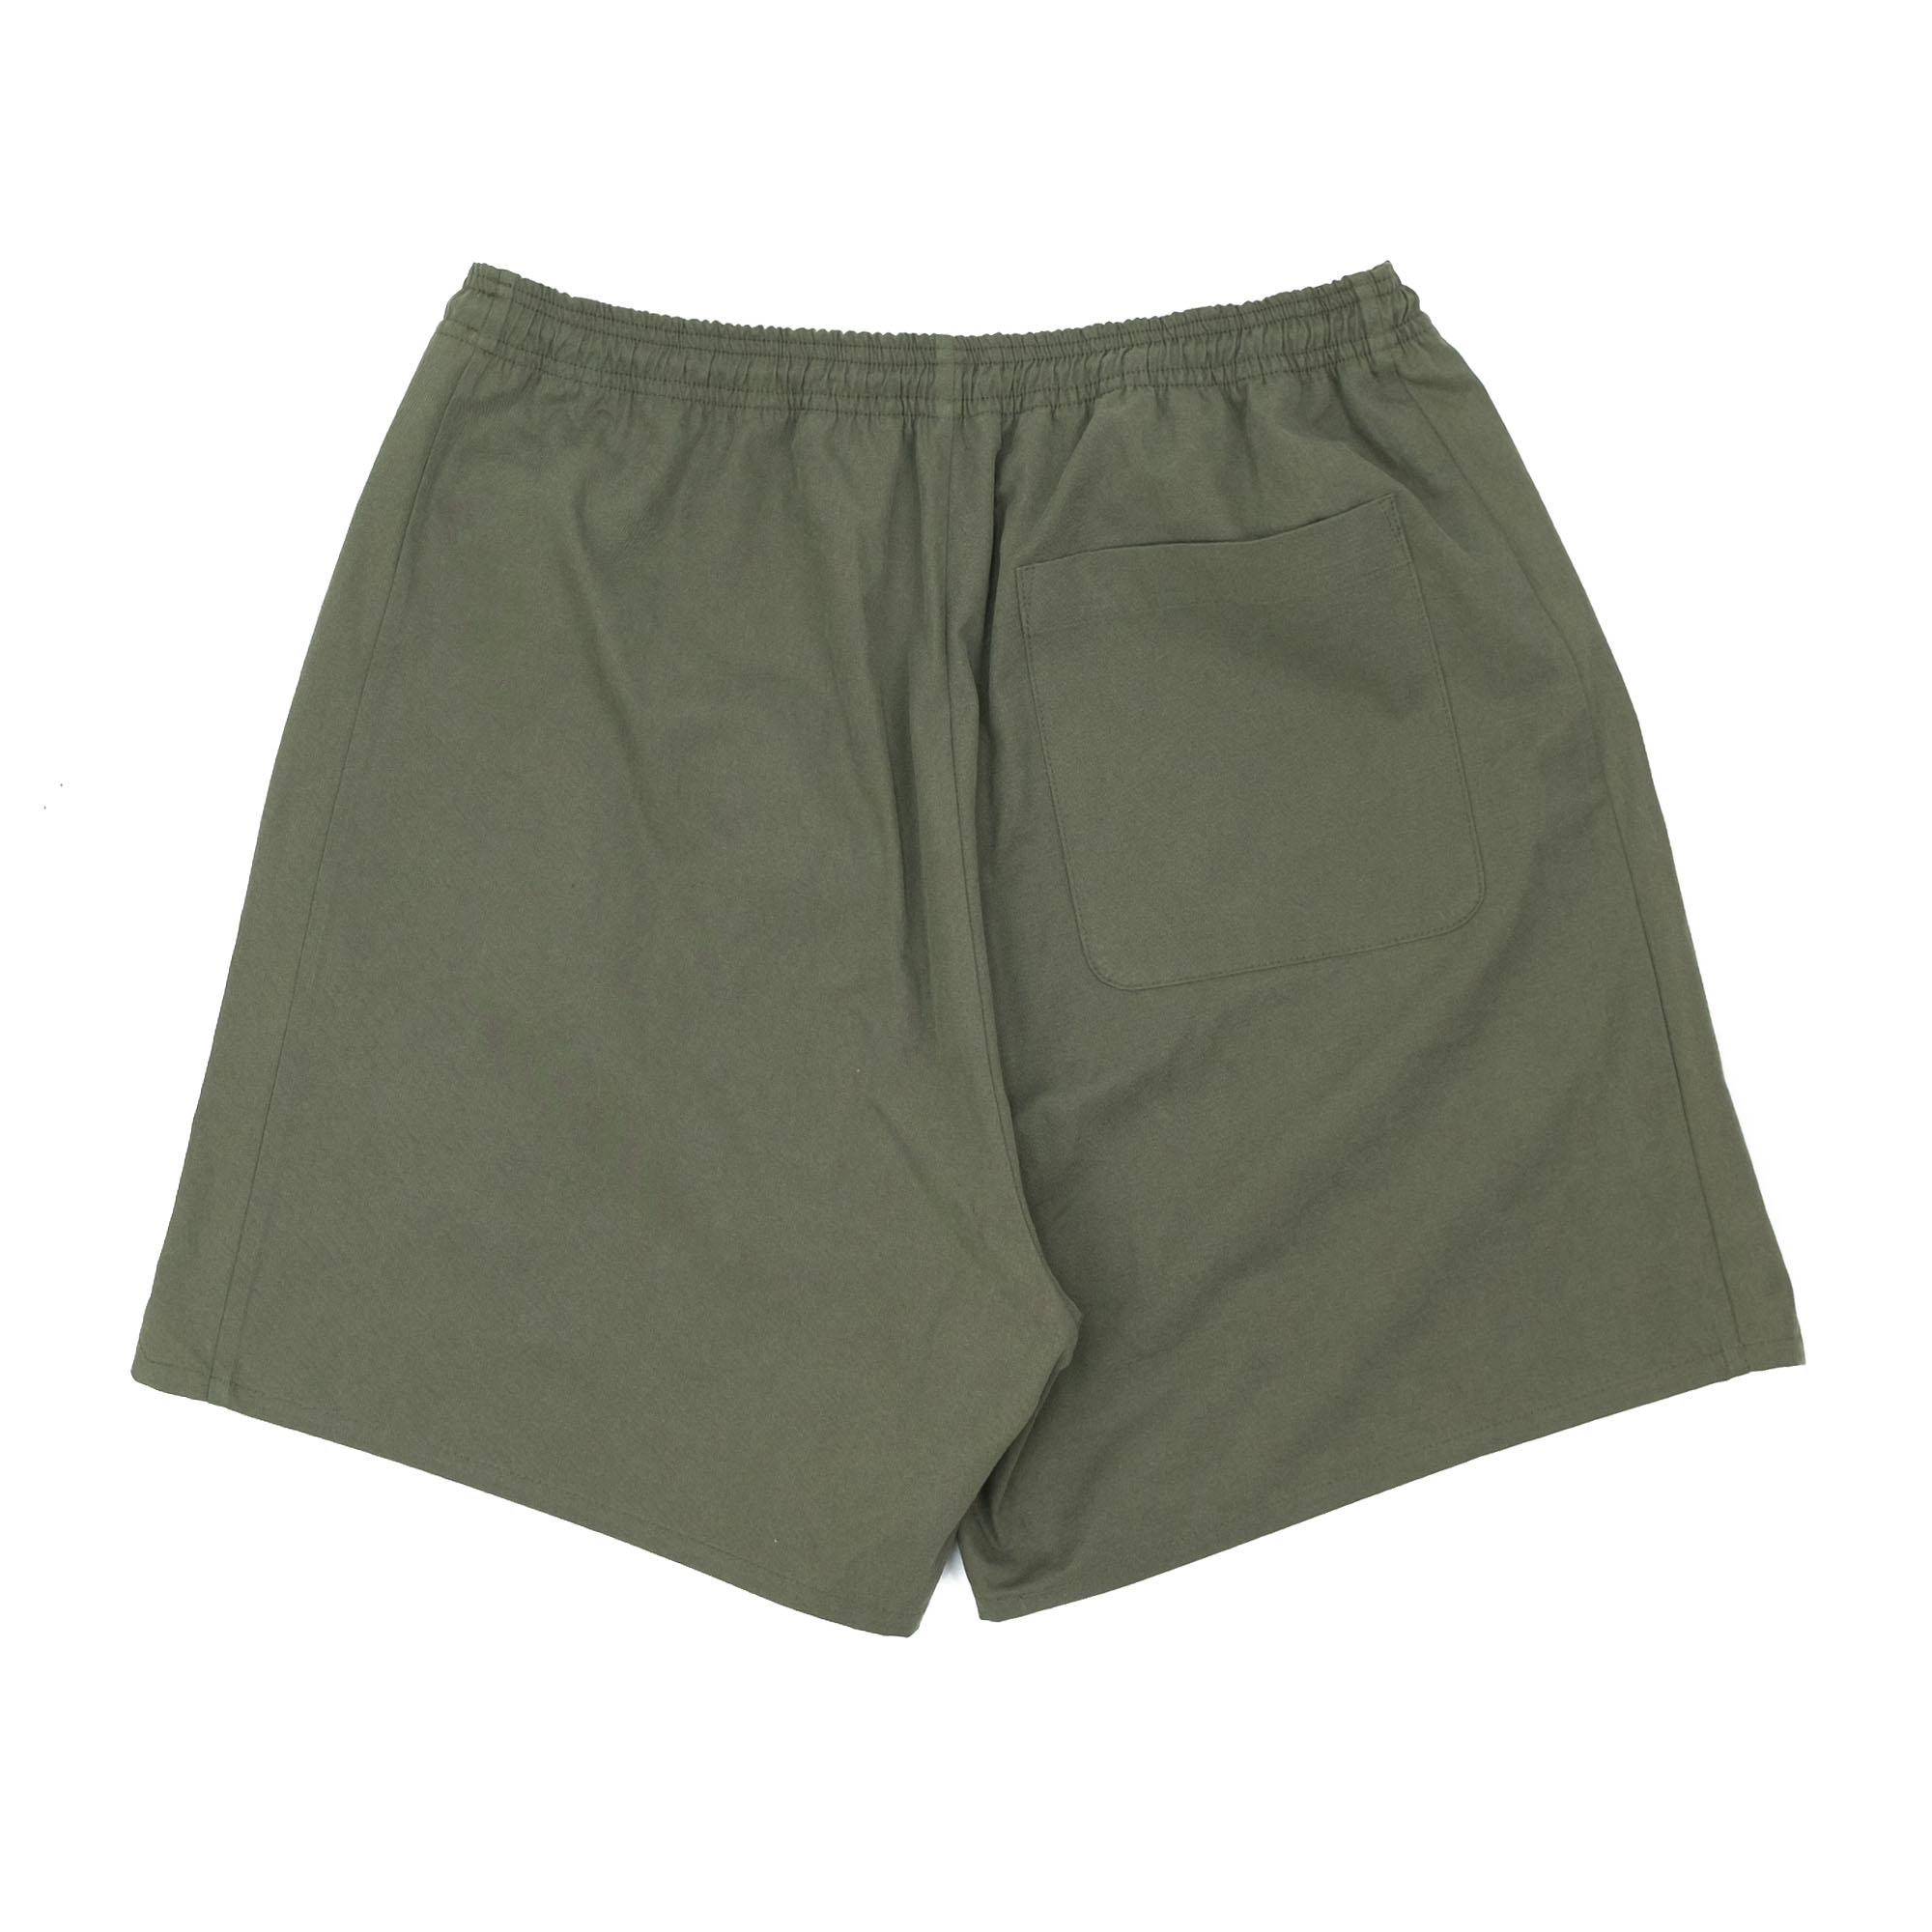 Sulfur Dyed Nidom Training Shorts Khaki 8